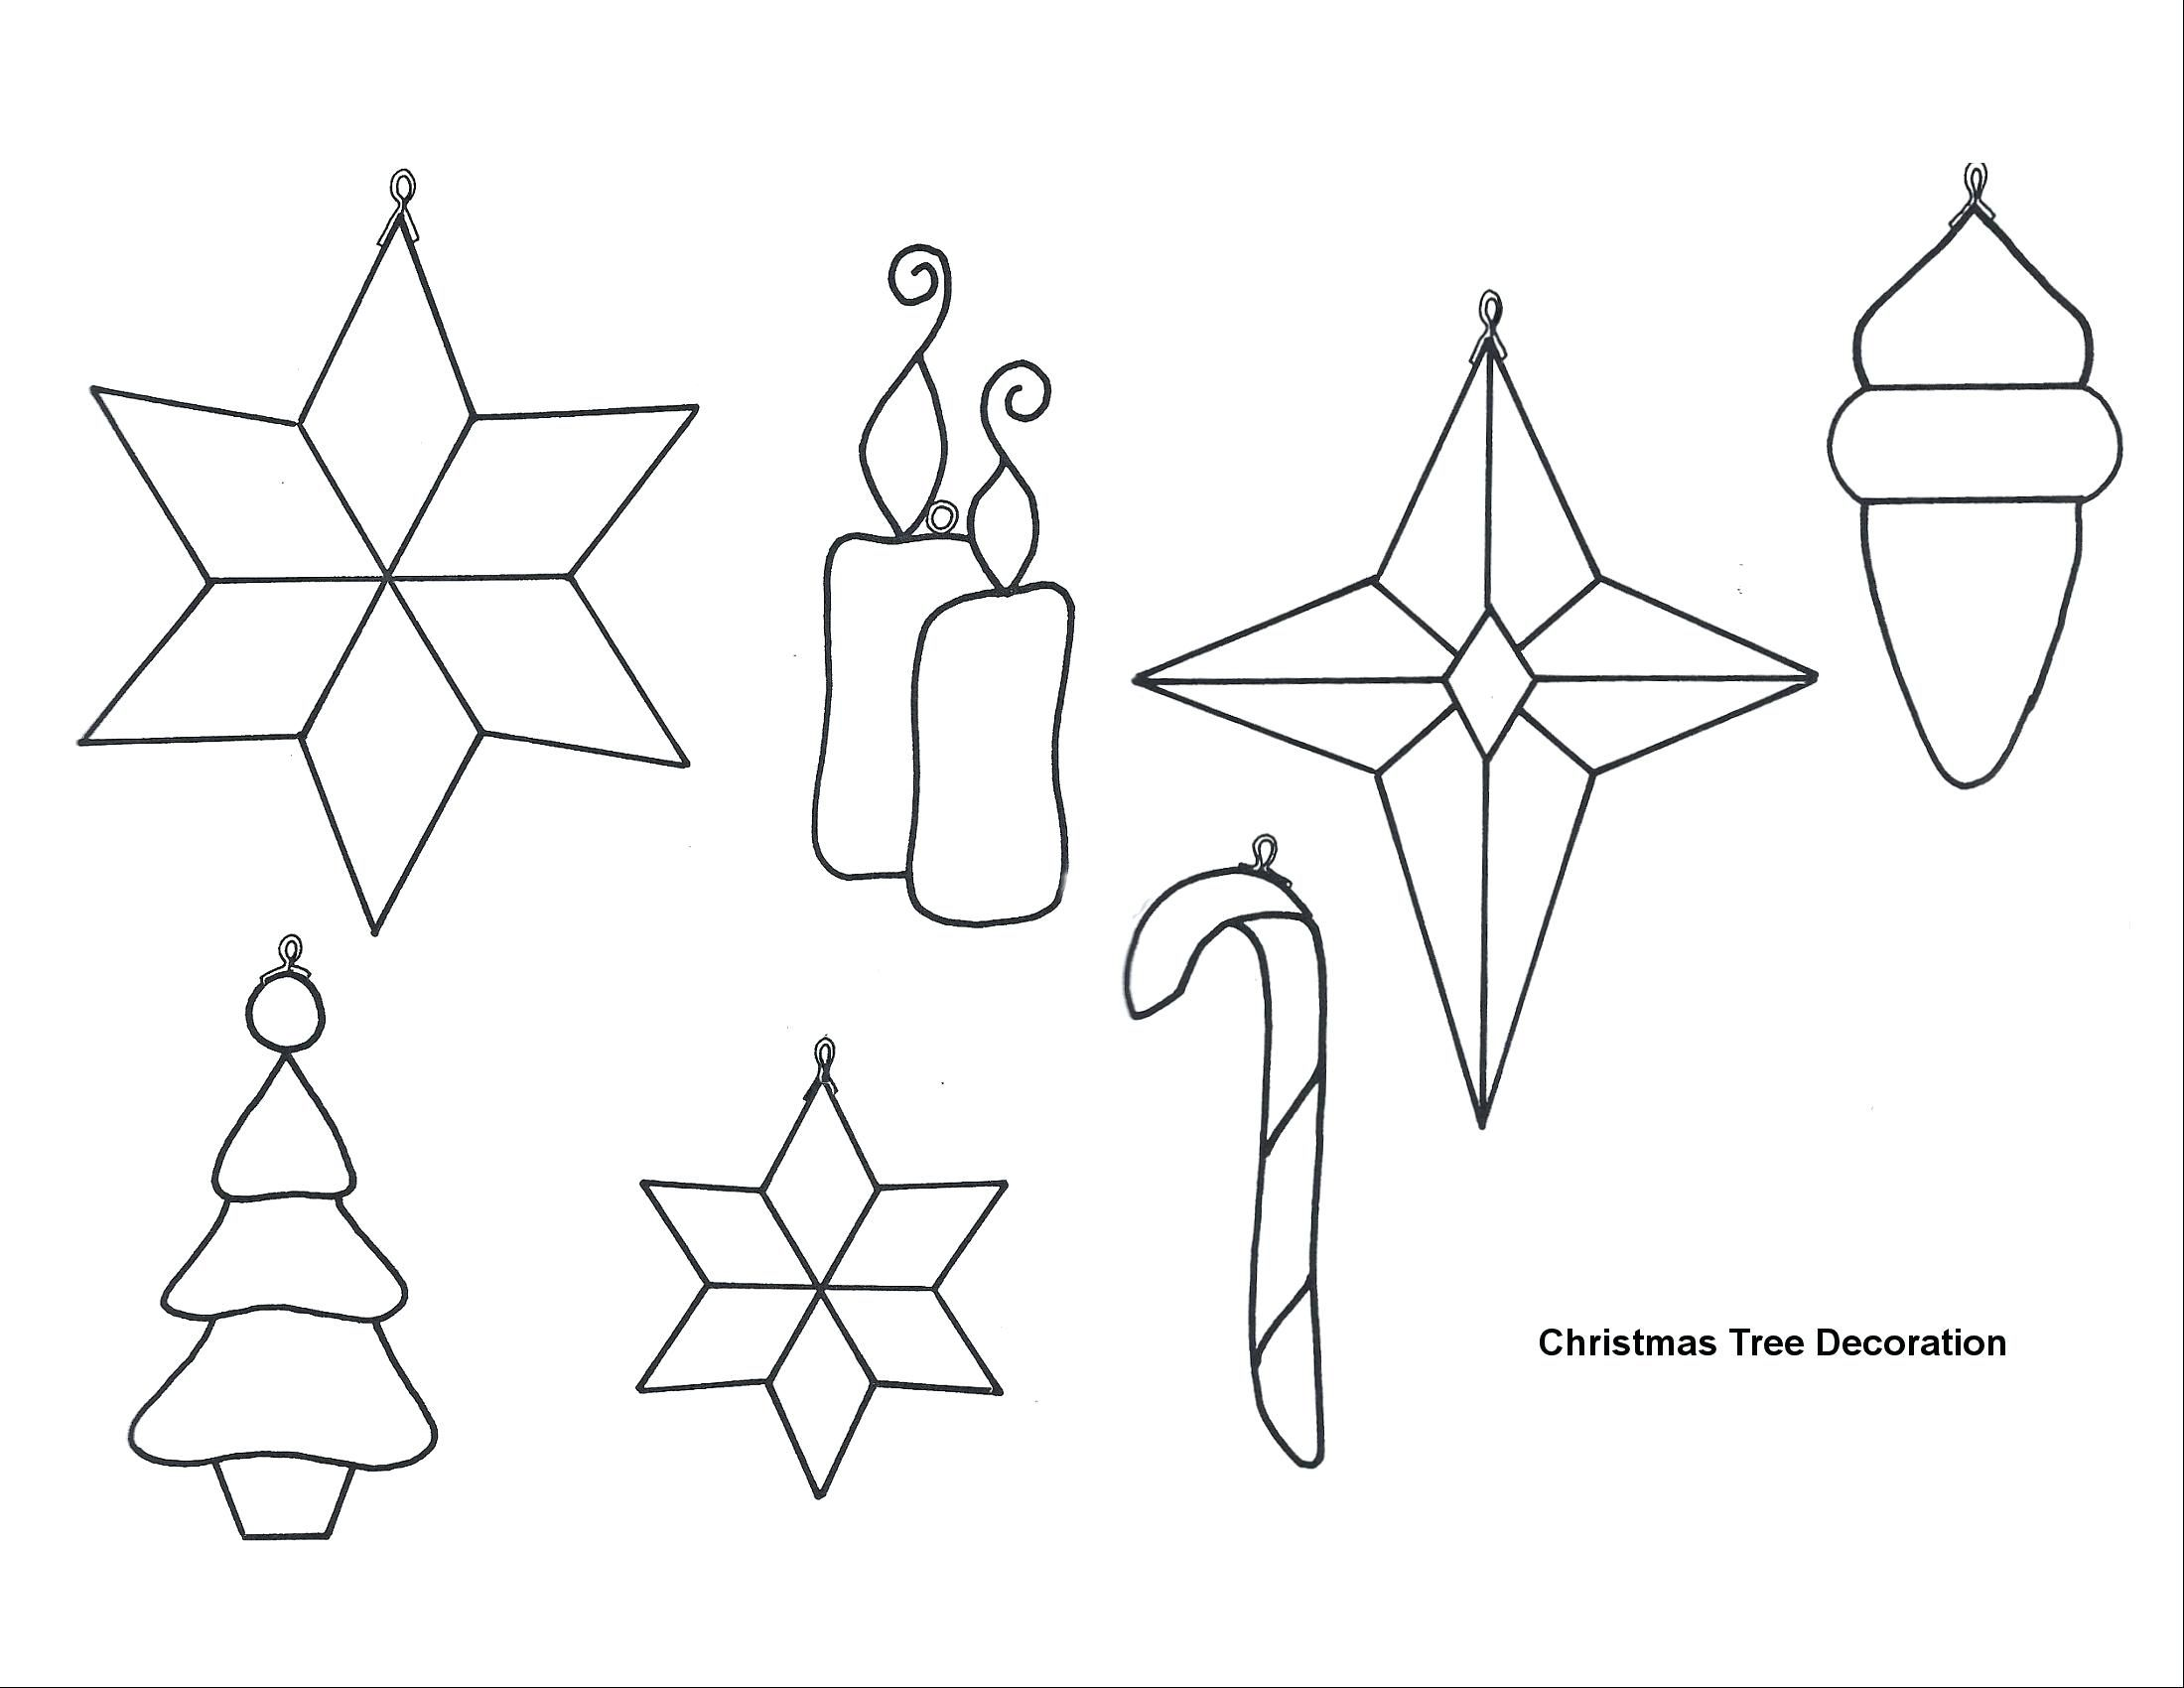 Felt Ornament Patterns Bird Xmas Free Stained Glass Christmas Stained Glass Patterns Free Christmas Ornament Template